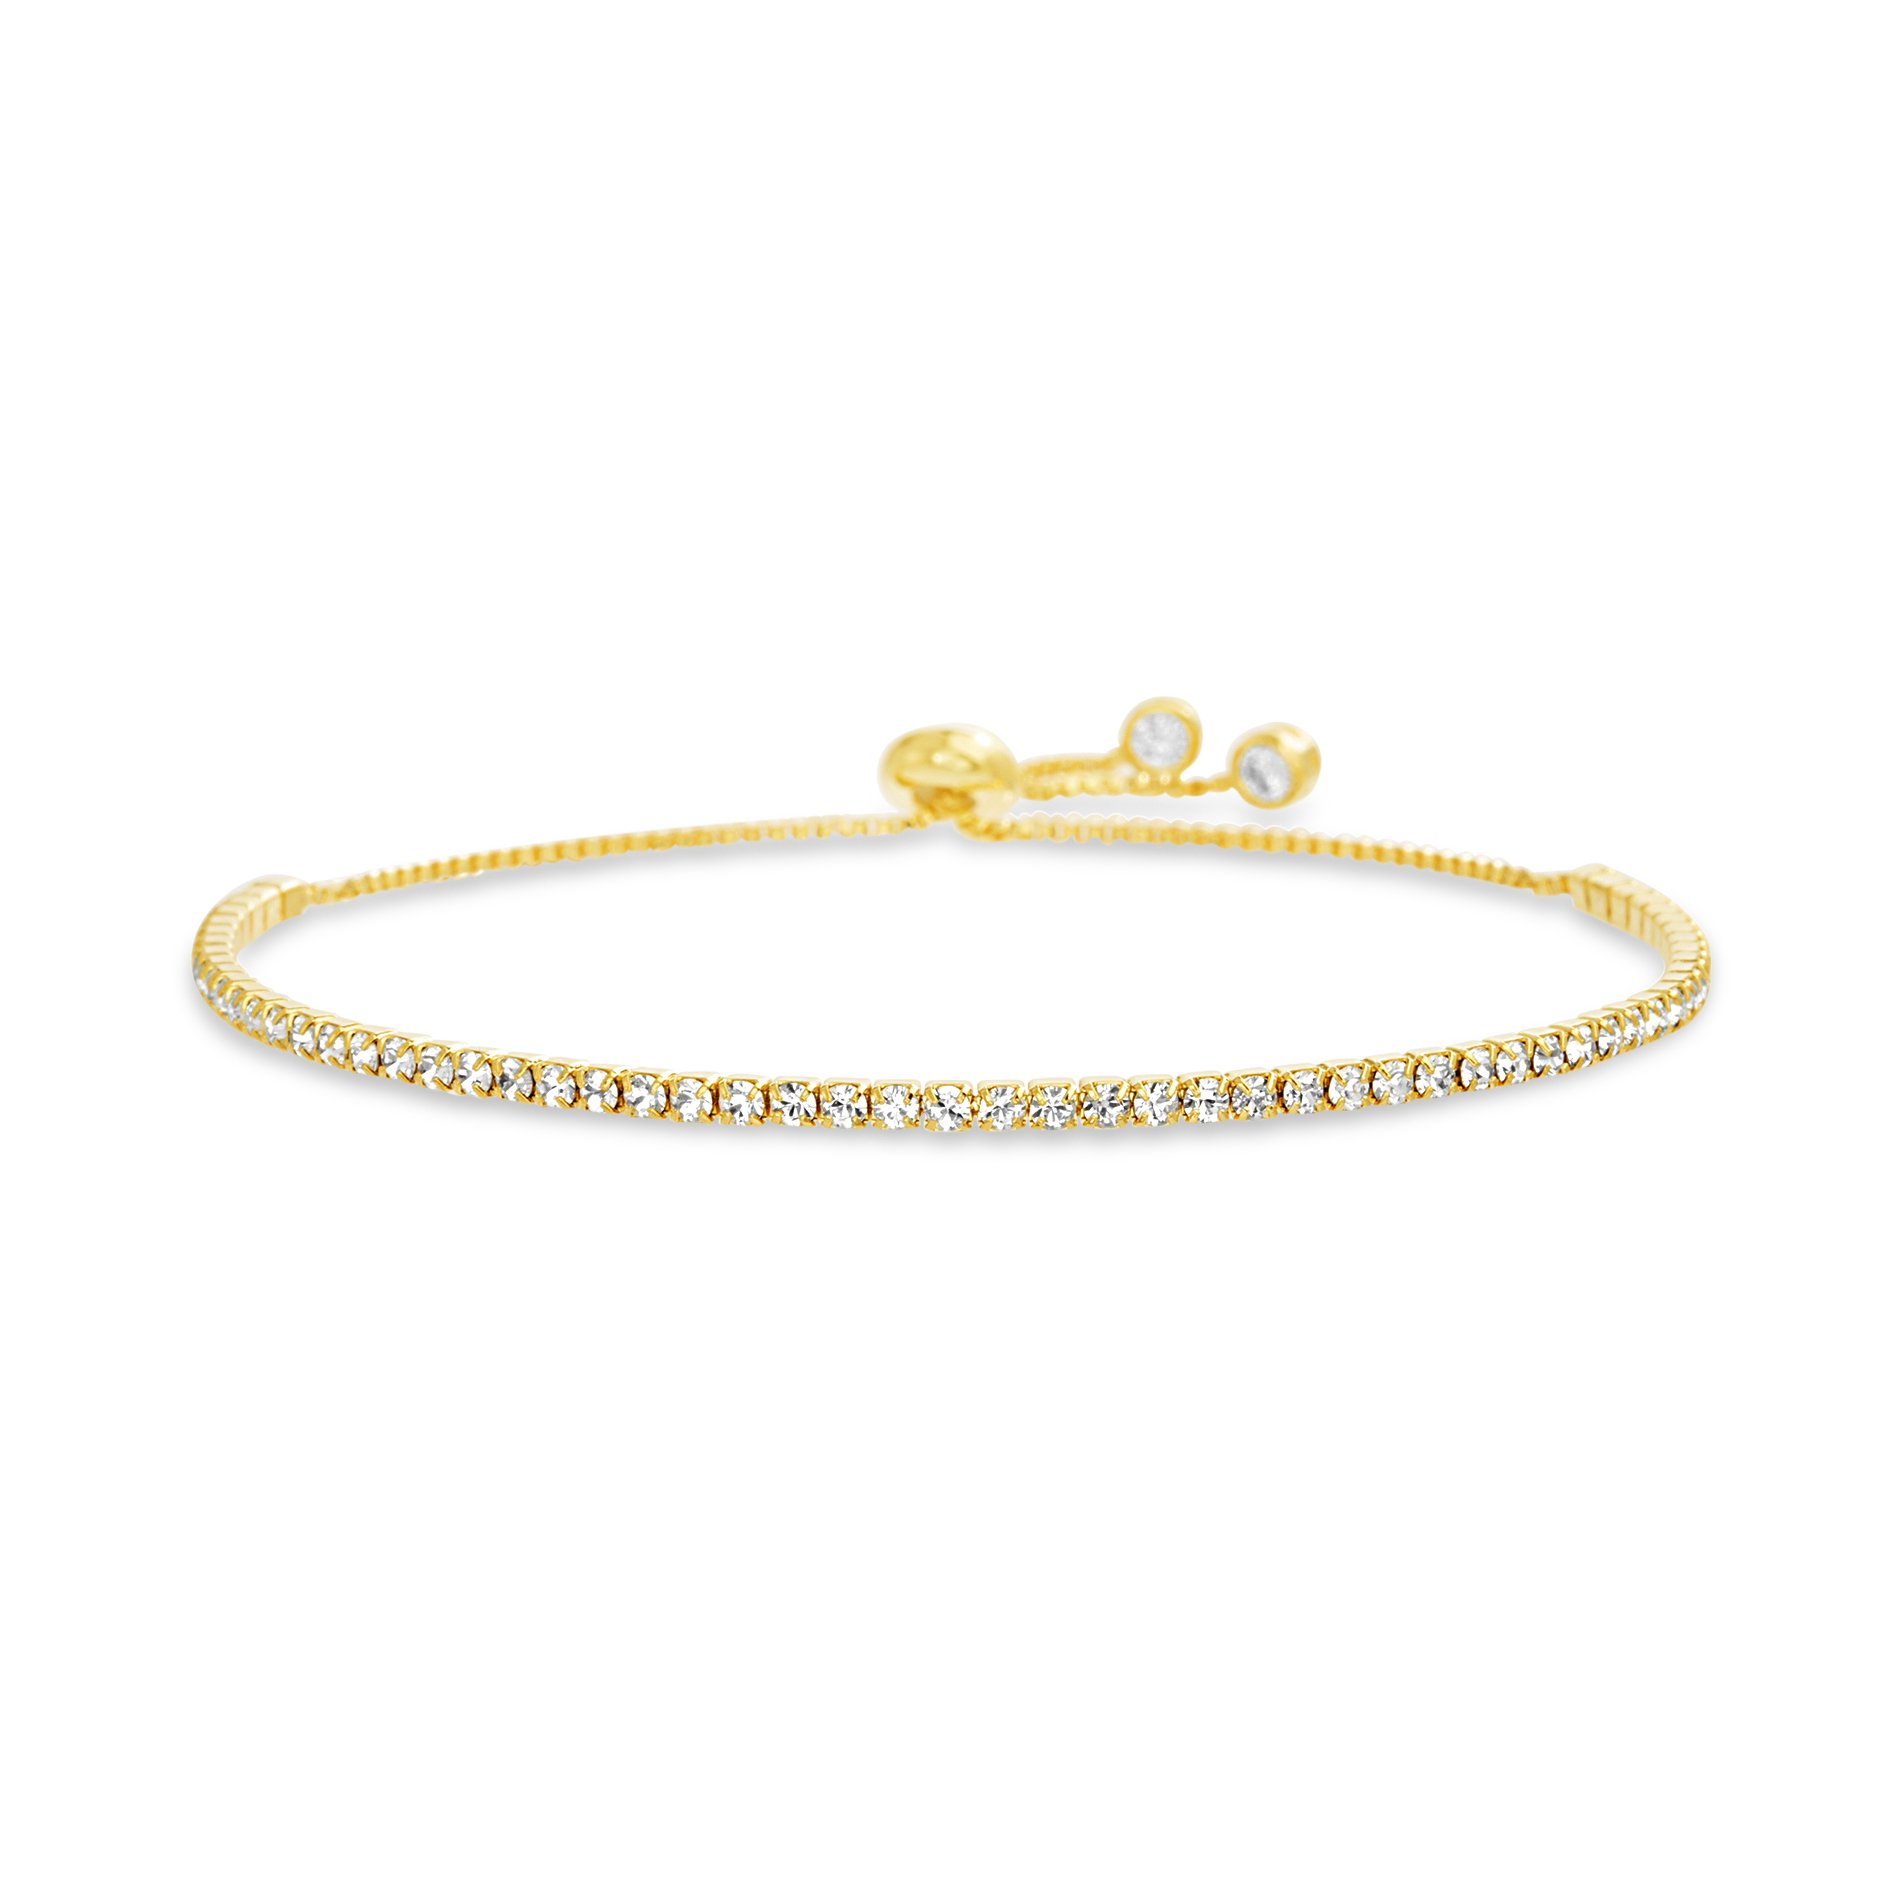 Devin Rose Adjustable Bolo Style Tennis Bracelet for Women Made with 2mm Swarovski Crystals in Yellow Gold Plated Brass (Yellow) by Devin Rose